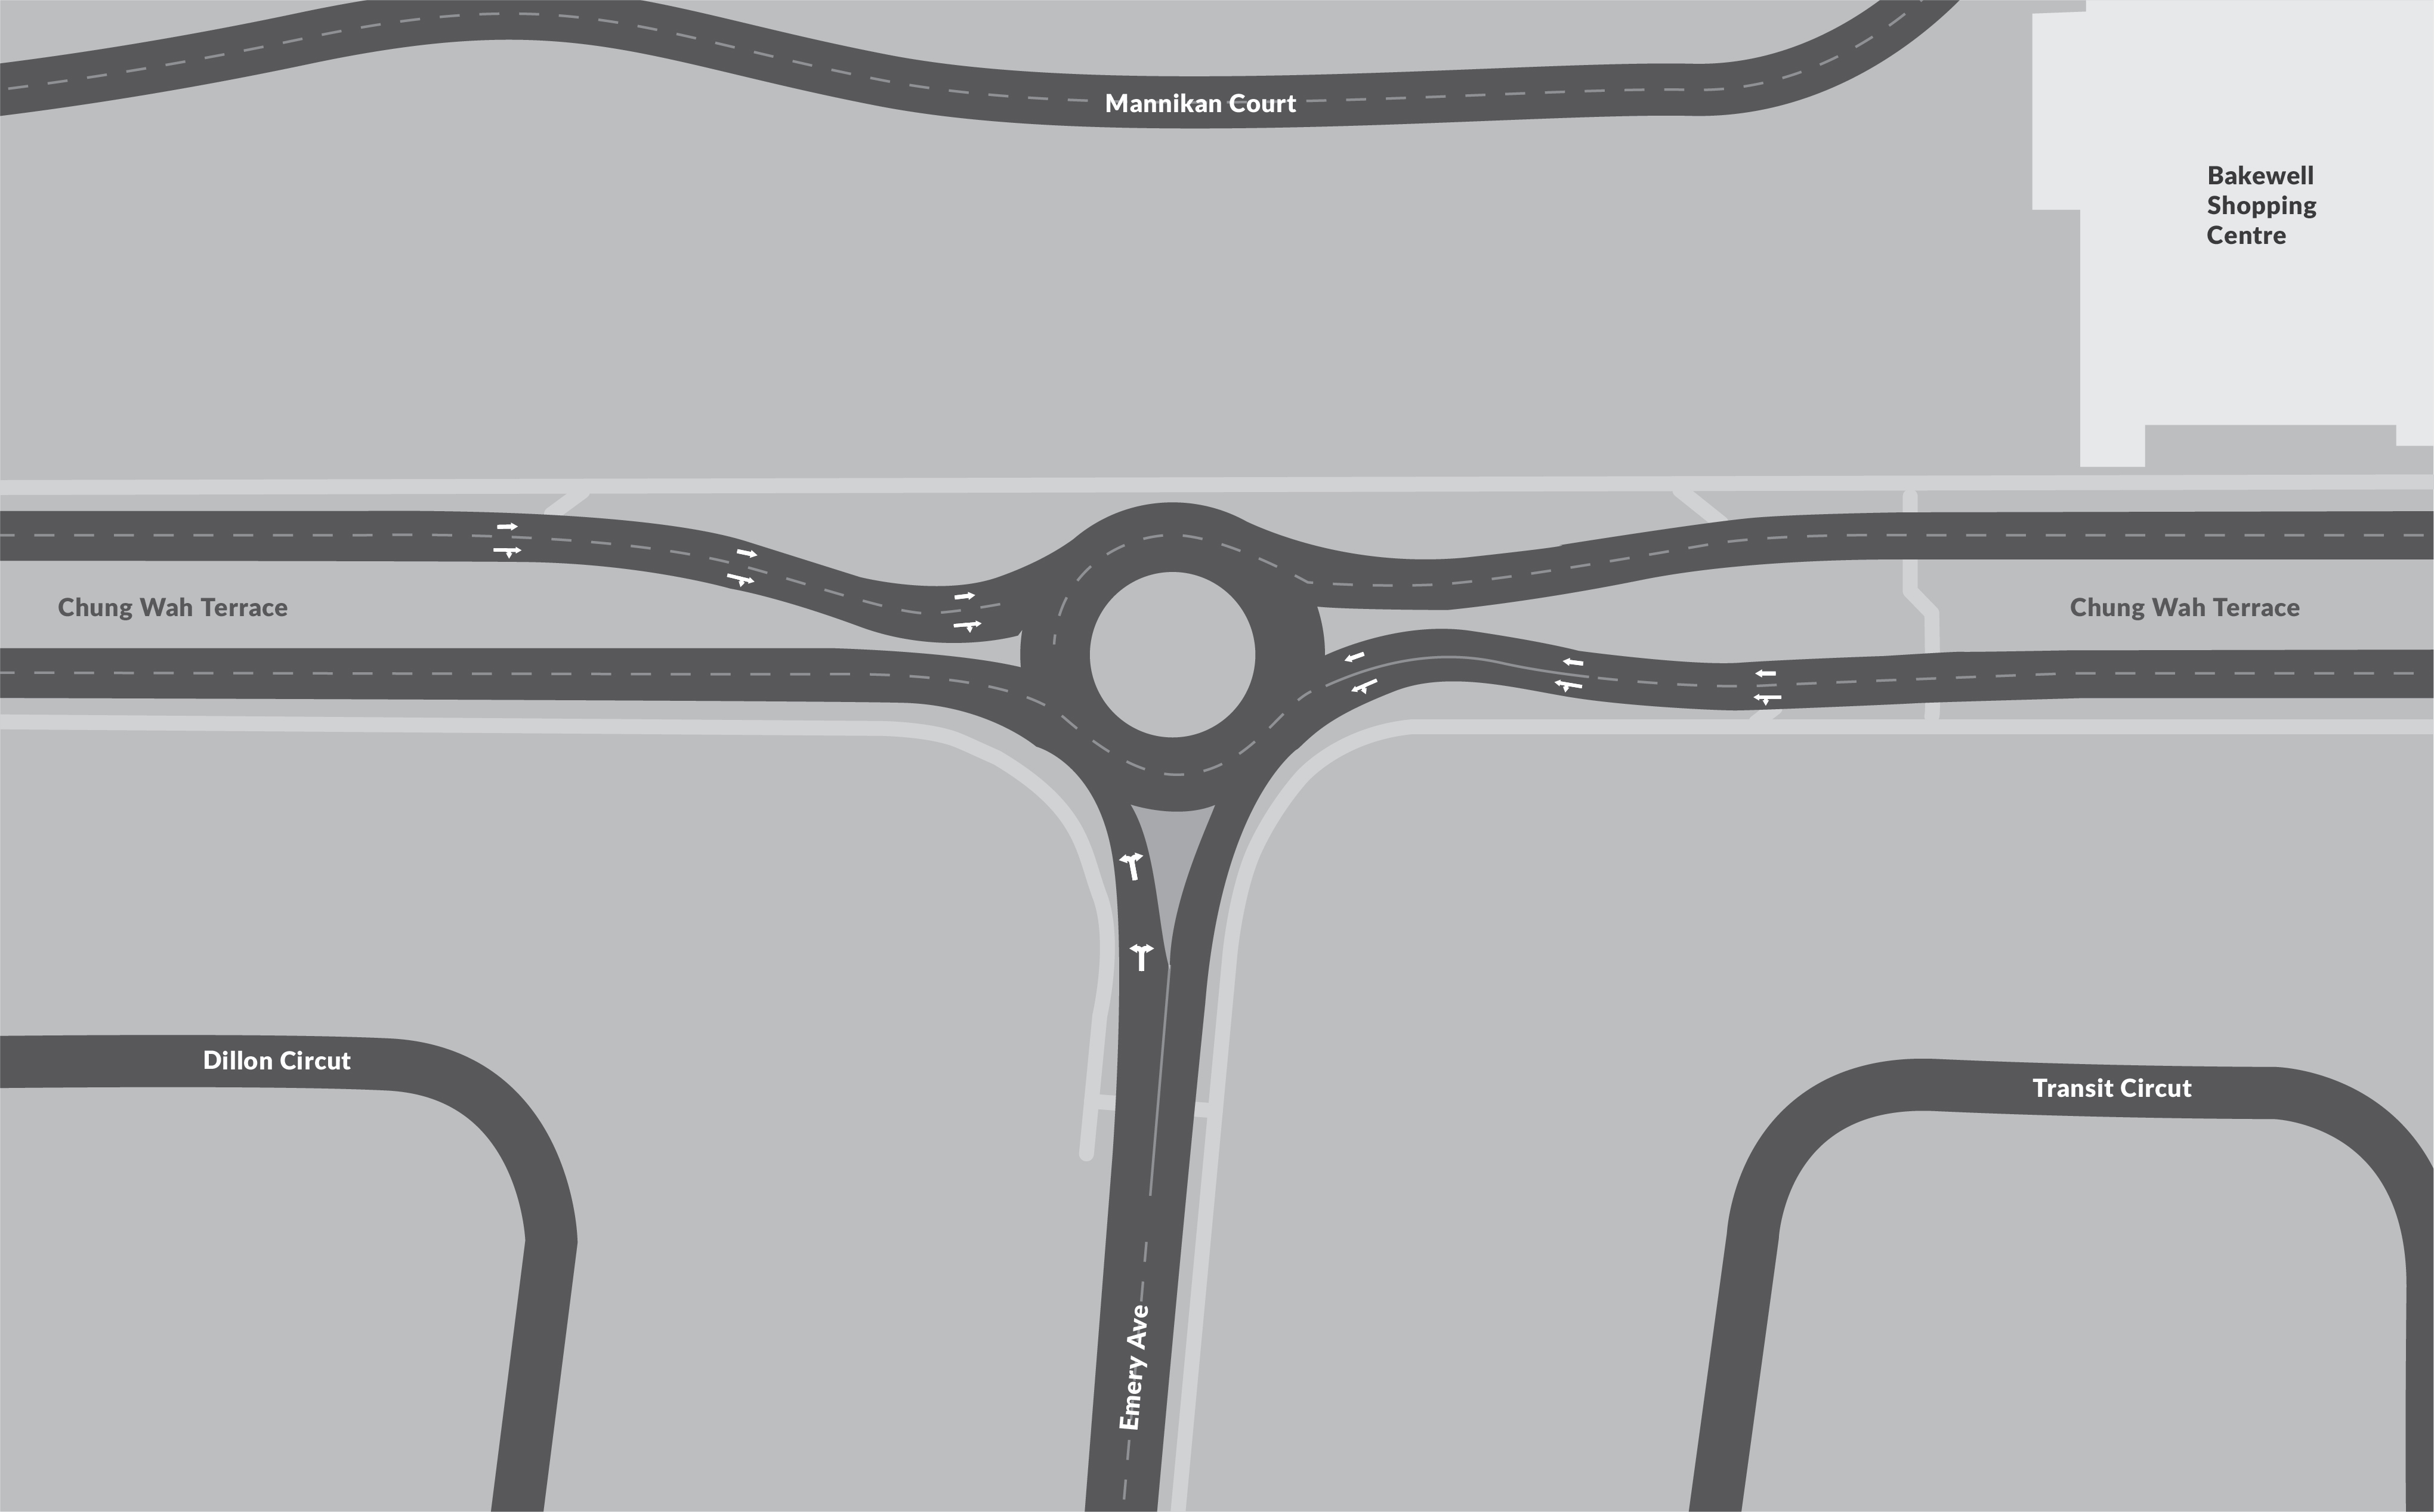 Proposed roundabout design for the intersection of Chung Wah Terrace and Emery Avenue.